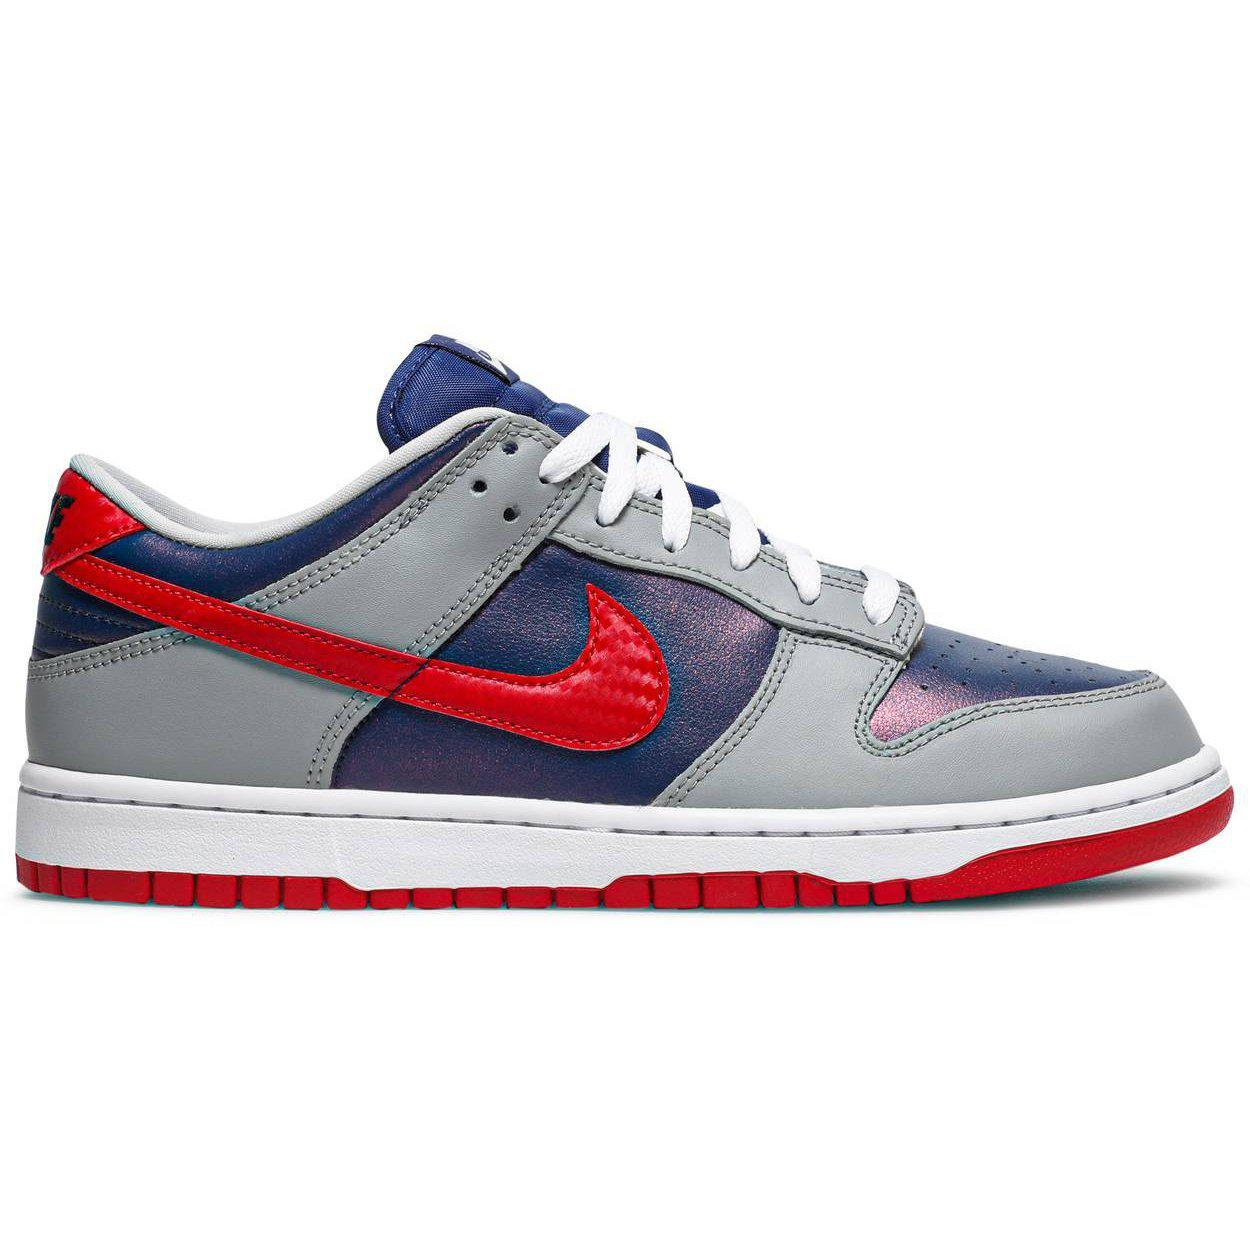 Nike Dunk Low Retro 'Samba' 2020 | Waves Never Die | Nike | Sneakers